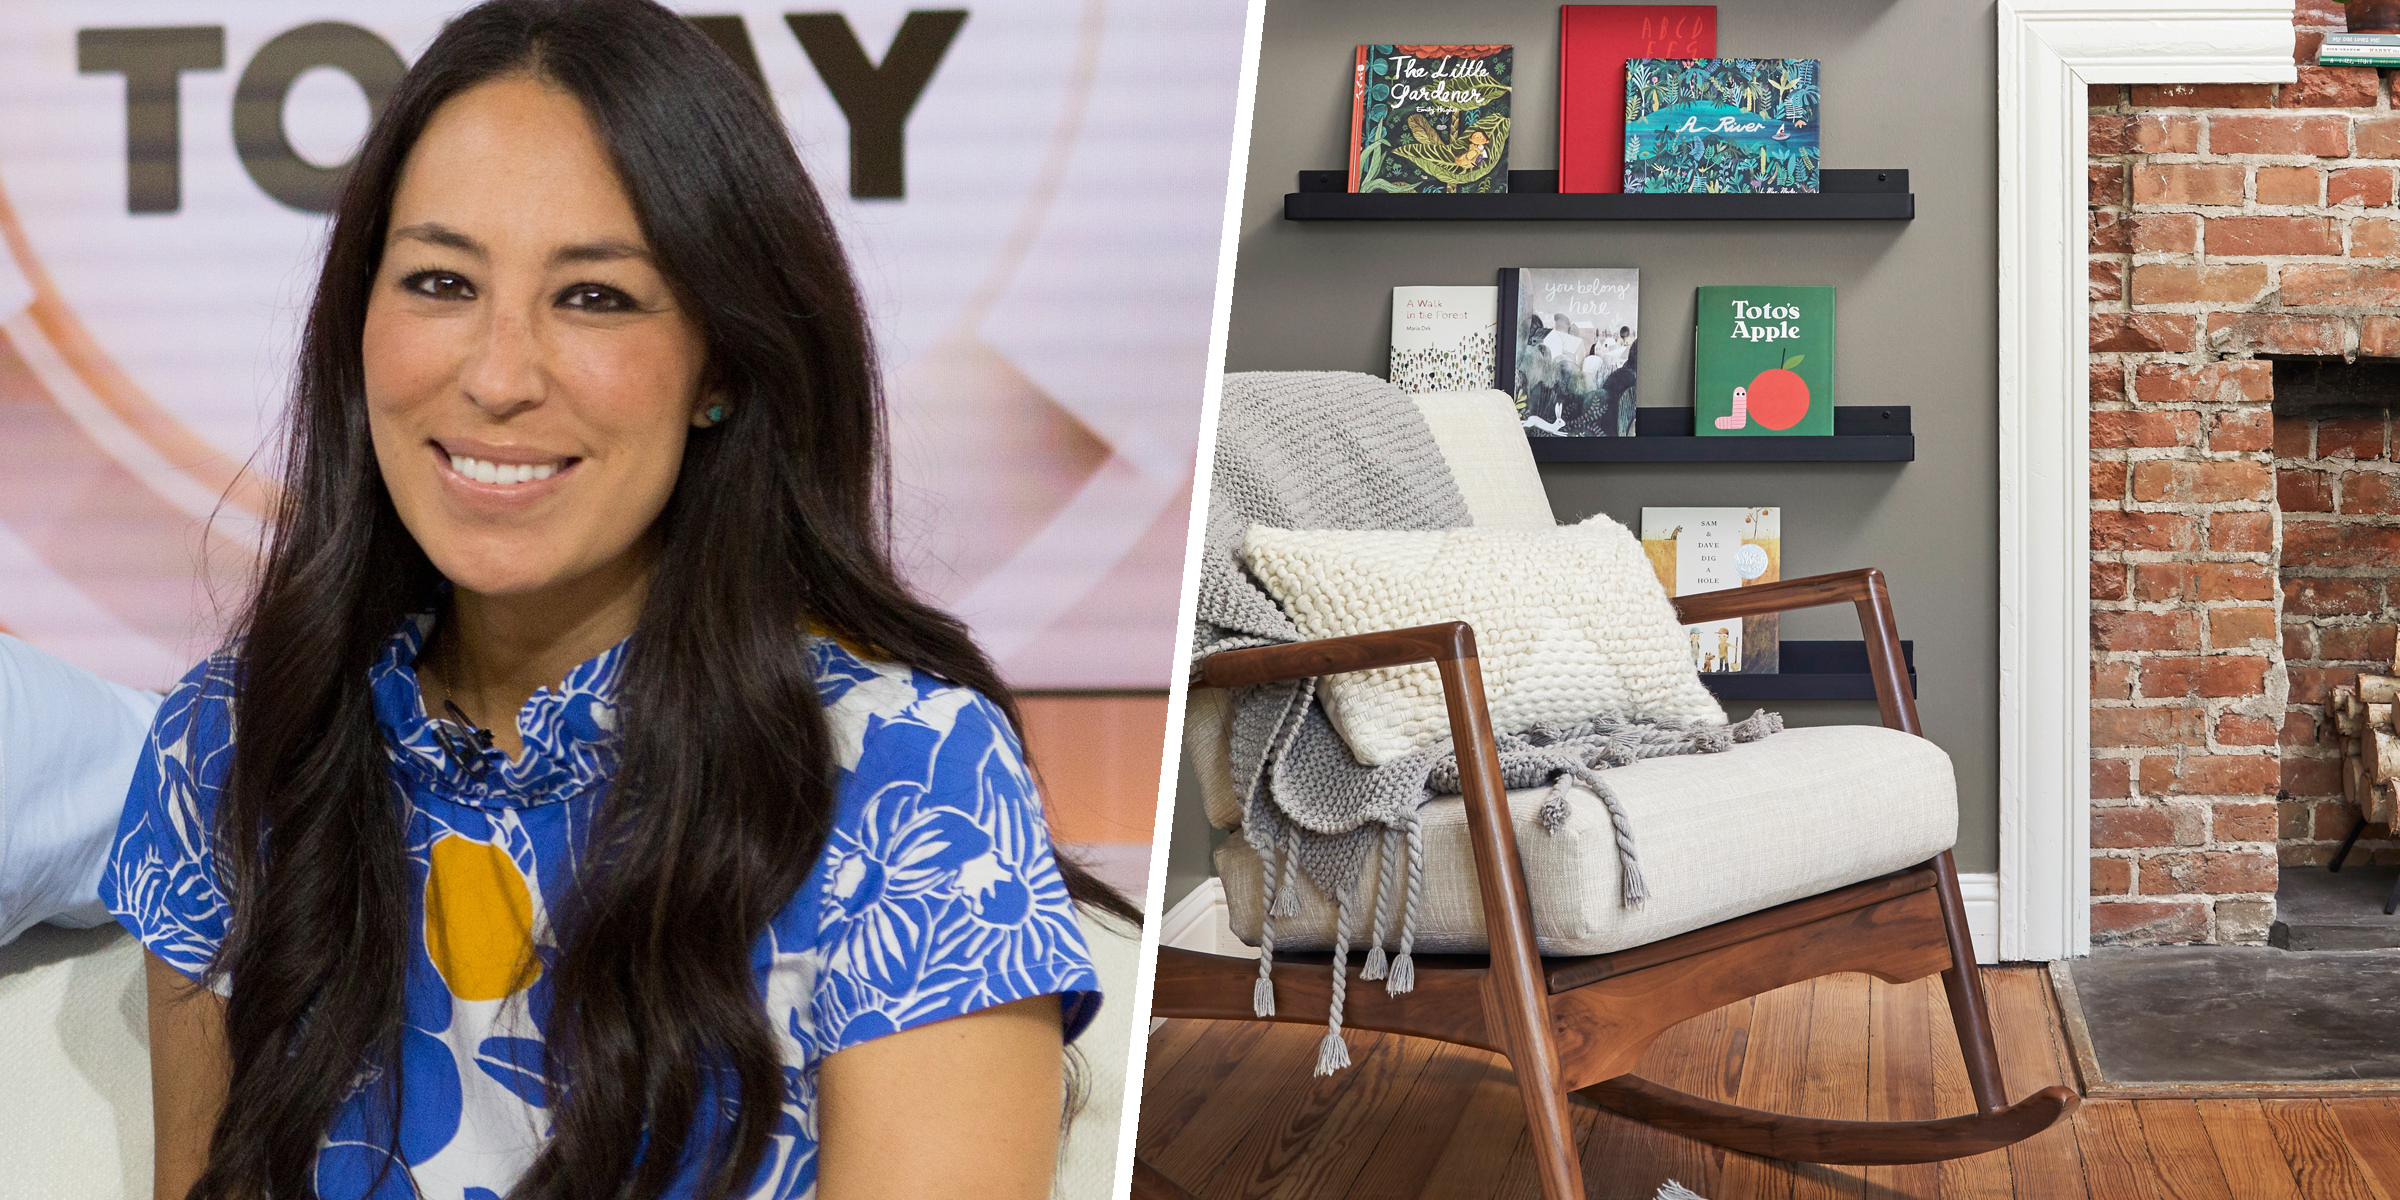 Joanna Gaines explains how she planned the perfect nursery for baby Crew